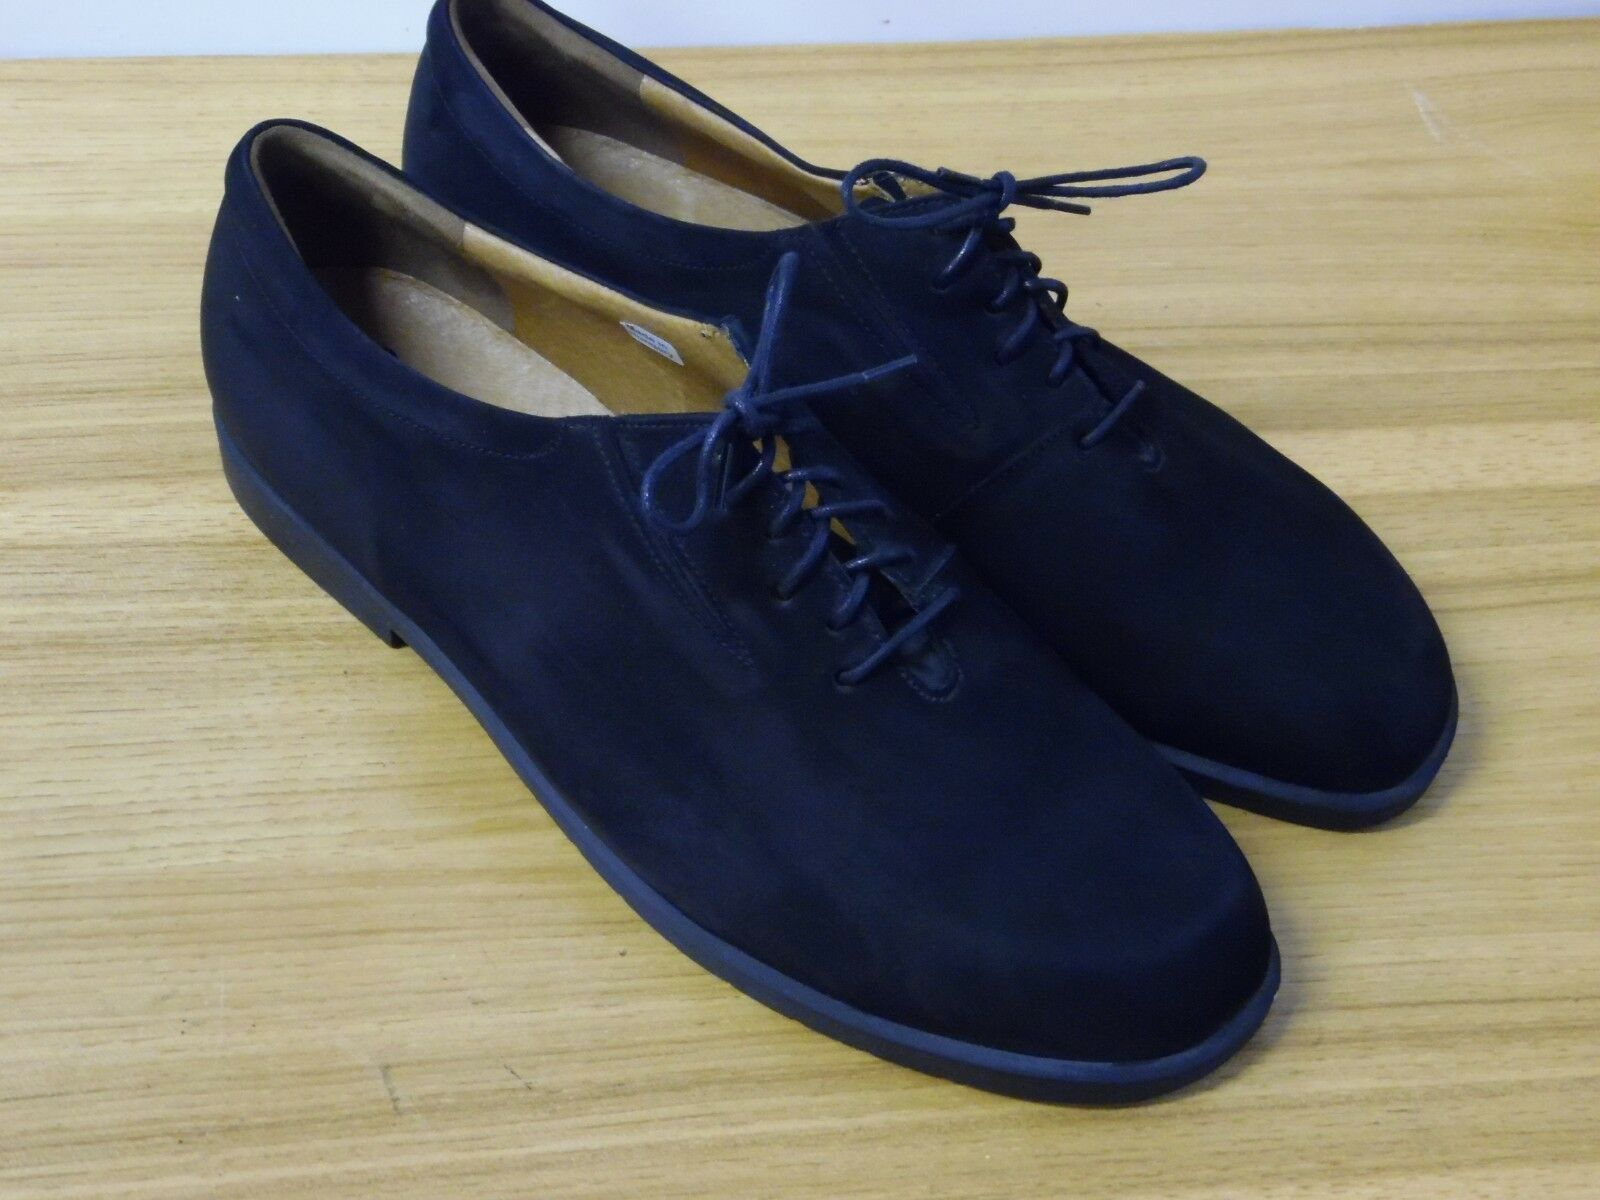 Mens  Berkemann Berkemann Berkemann black suade lace up oxfords dress casual size 9 7fa5a4